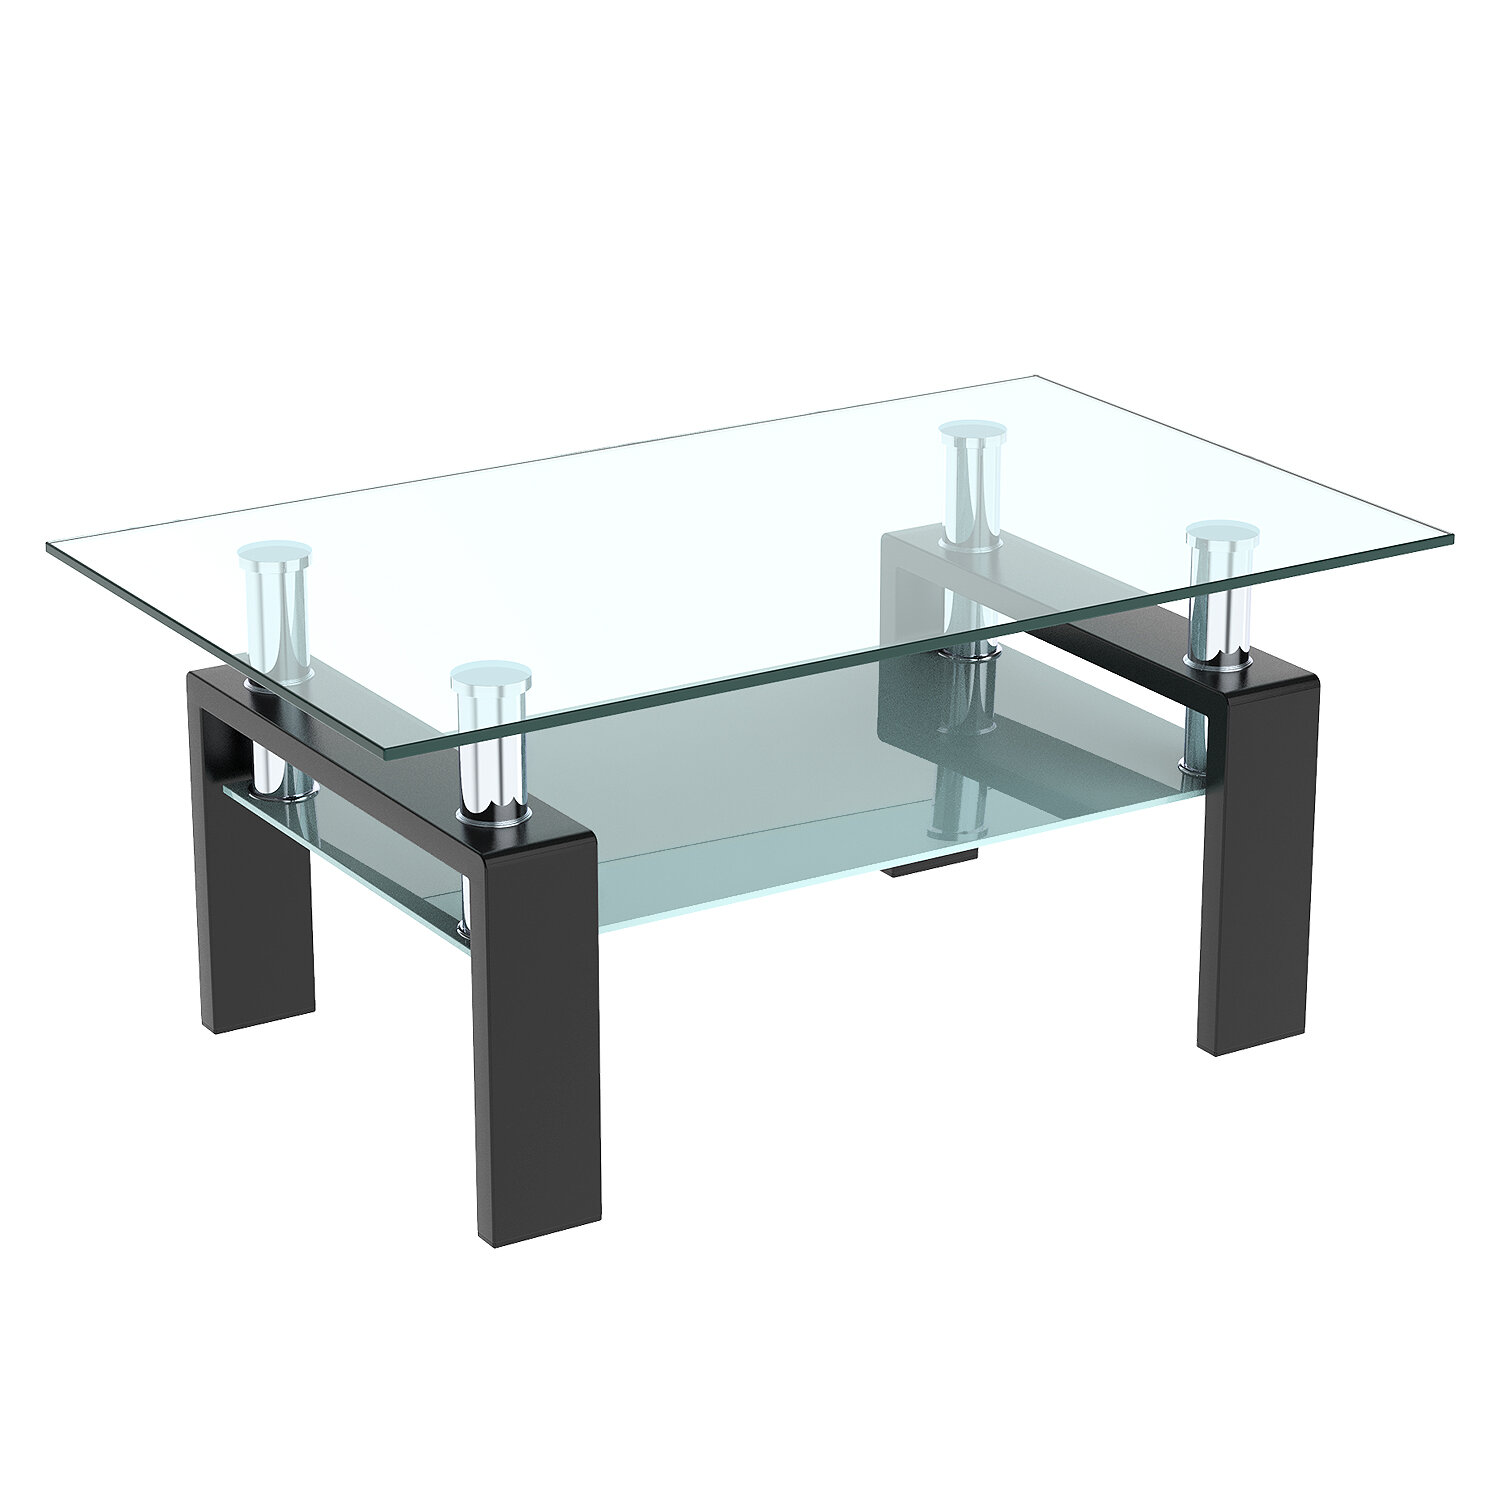 Picture of: Orren Ellis Coffee Table Rectangle Glass Modern Coffee Table With Shelf Wood Legs Suit For Living Room Living Room Furniture Waiting Area Table Black